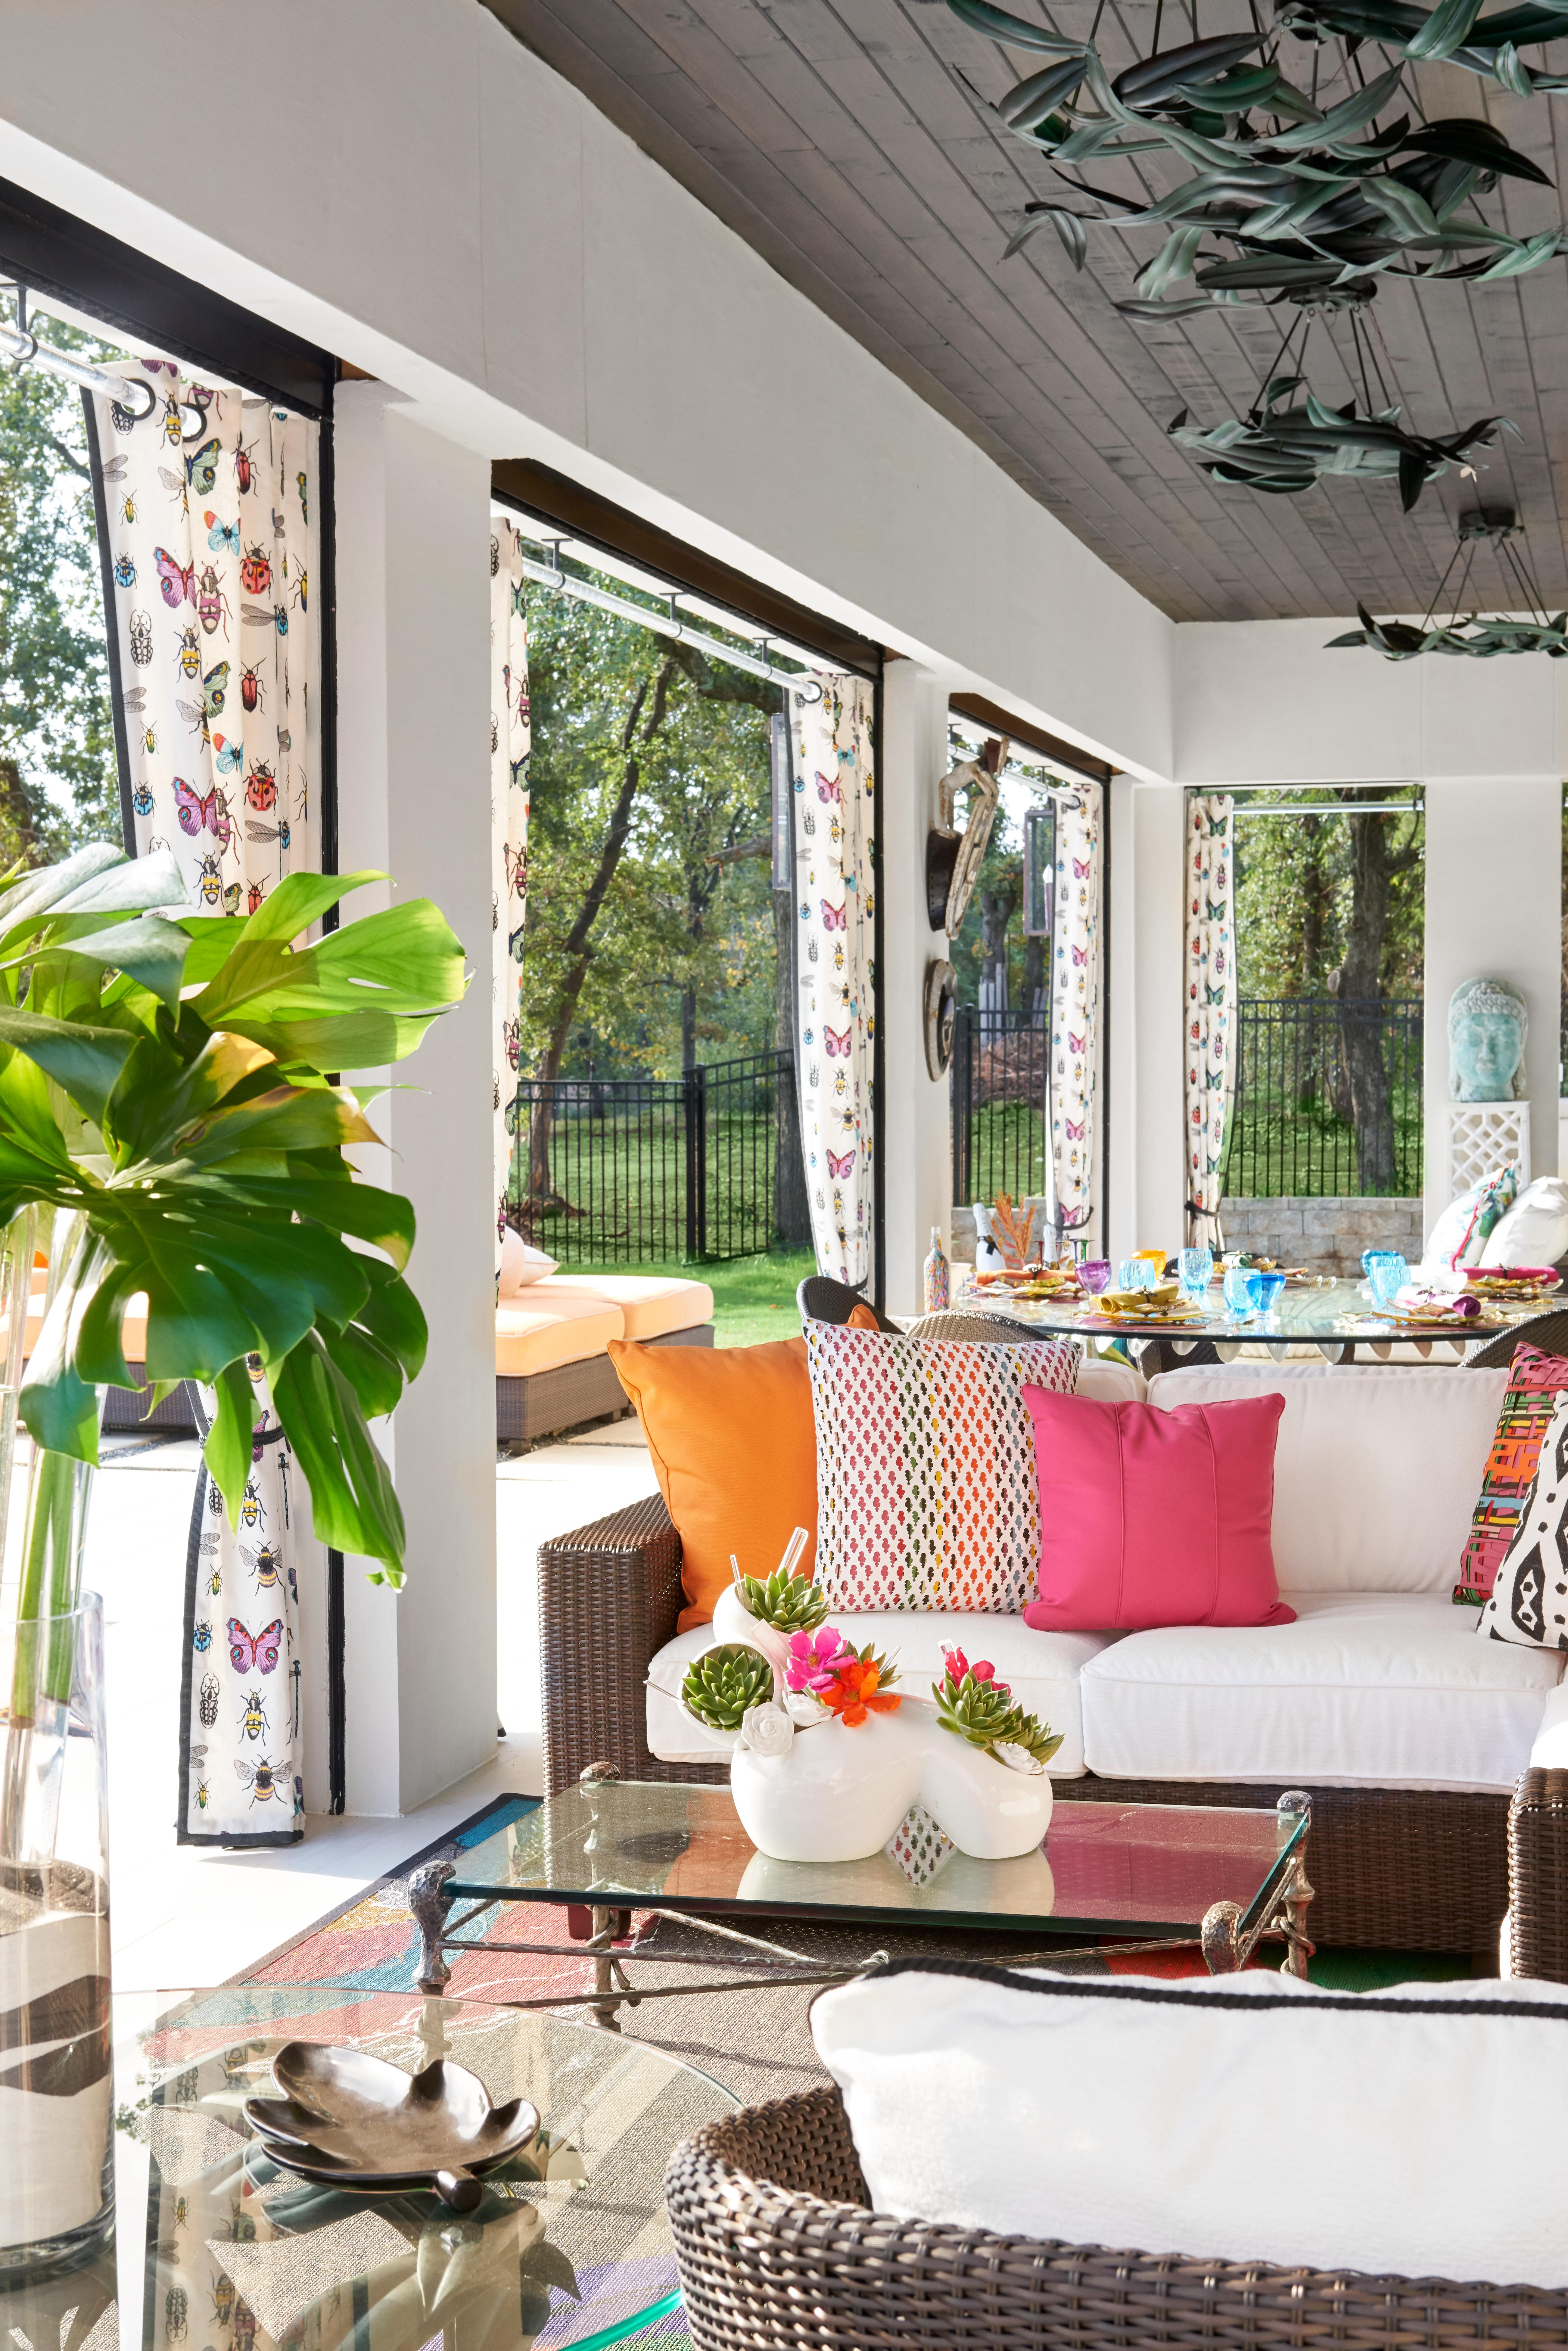 Colorful Backyard Decorating Ideas Better Homes Gardens in 10 Genius Concepts of How to Improve Colorful Backyard Ideas